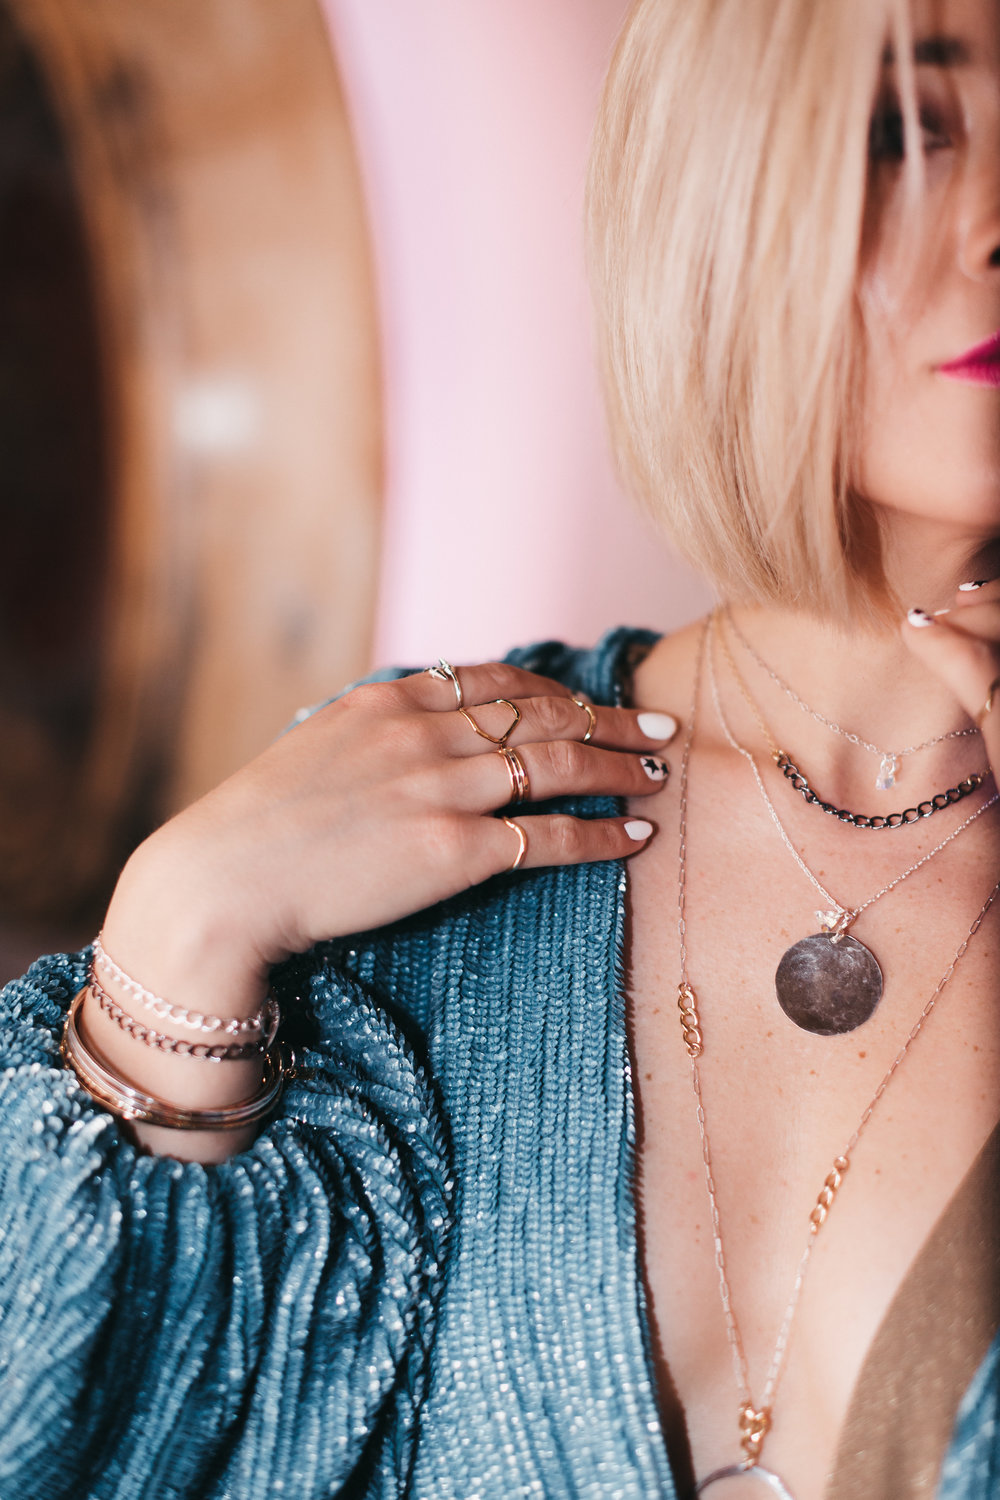 Megan wears the Tiny Dancer,  the Gwen , the Medallion, and  the Stevie . Bracelets:  The Toggle  and the Bangle Bracelets. Rings: Bullet series, Hexagon, Stackable band and the Wave Band.